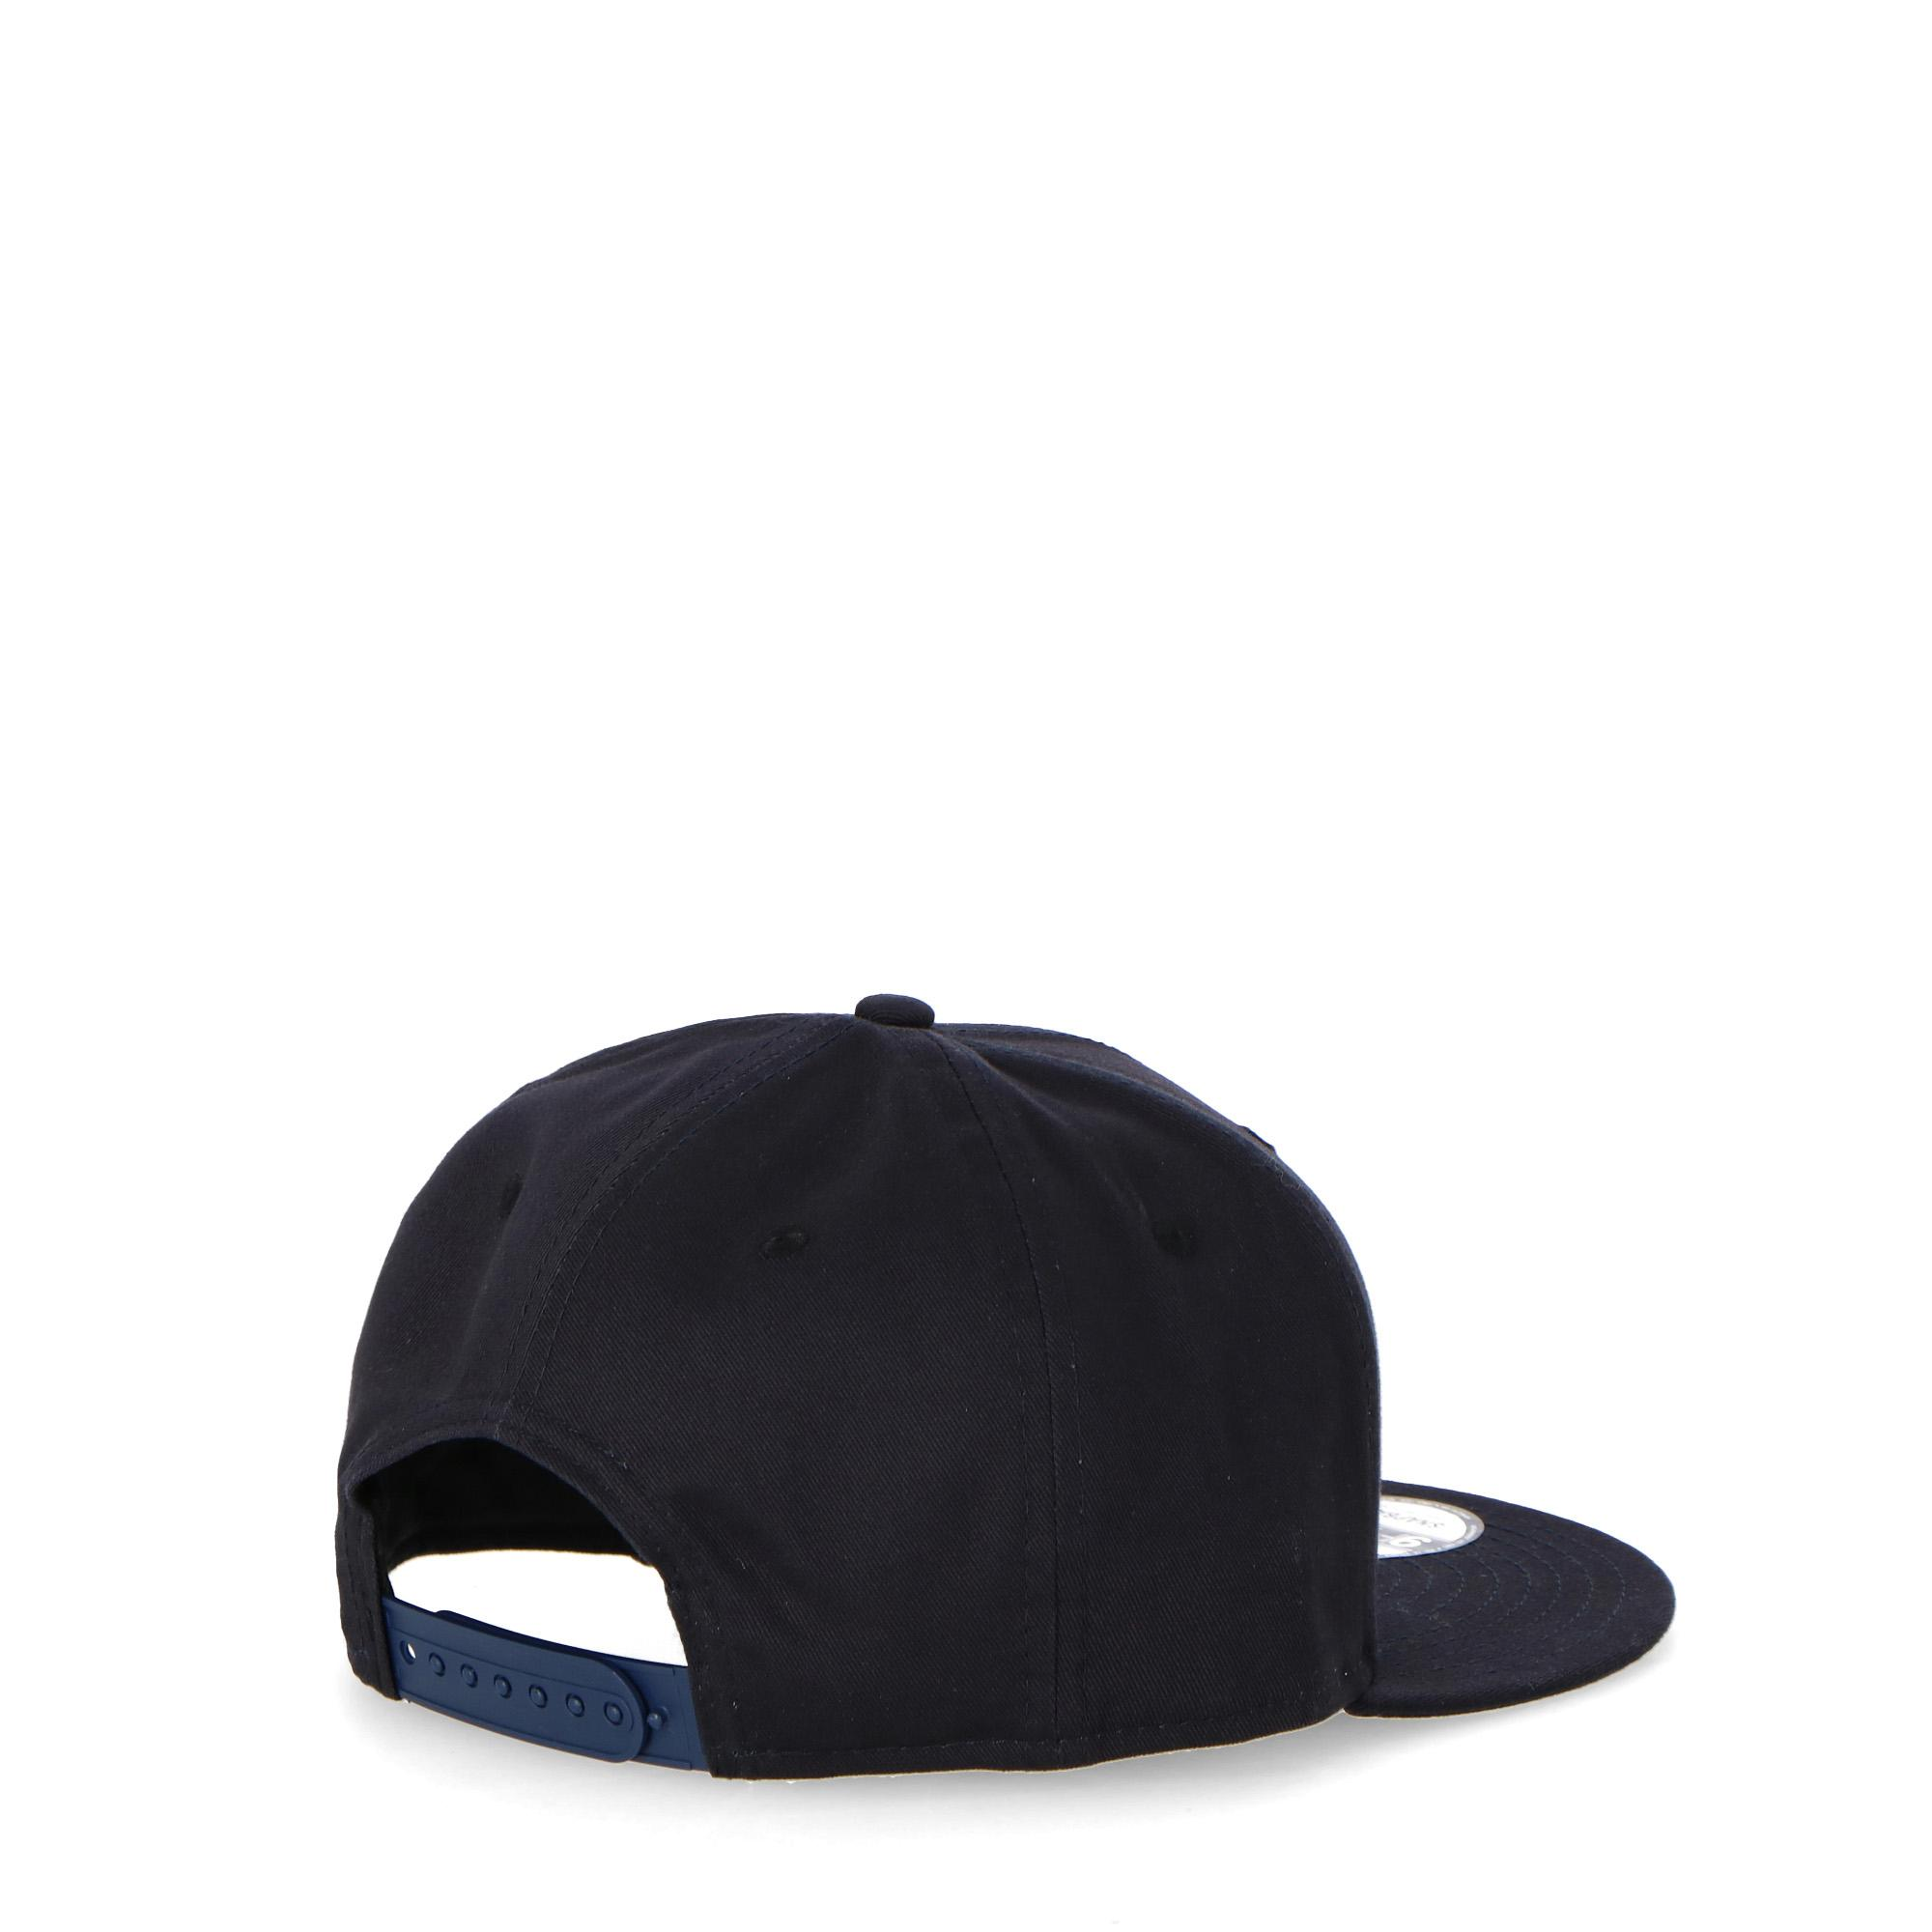 3a39d152b2956b New Era Ny Yankees Essential 9fifty<br/> New York Yankees | Treesse